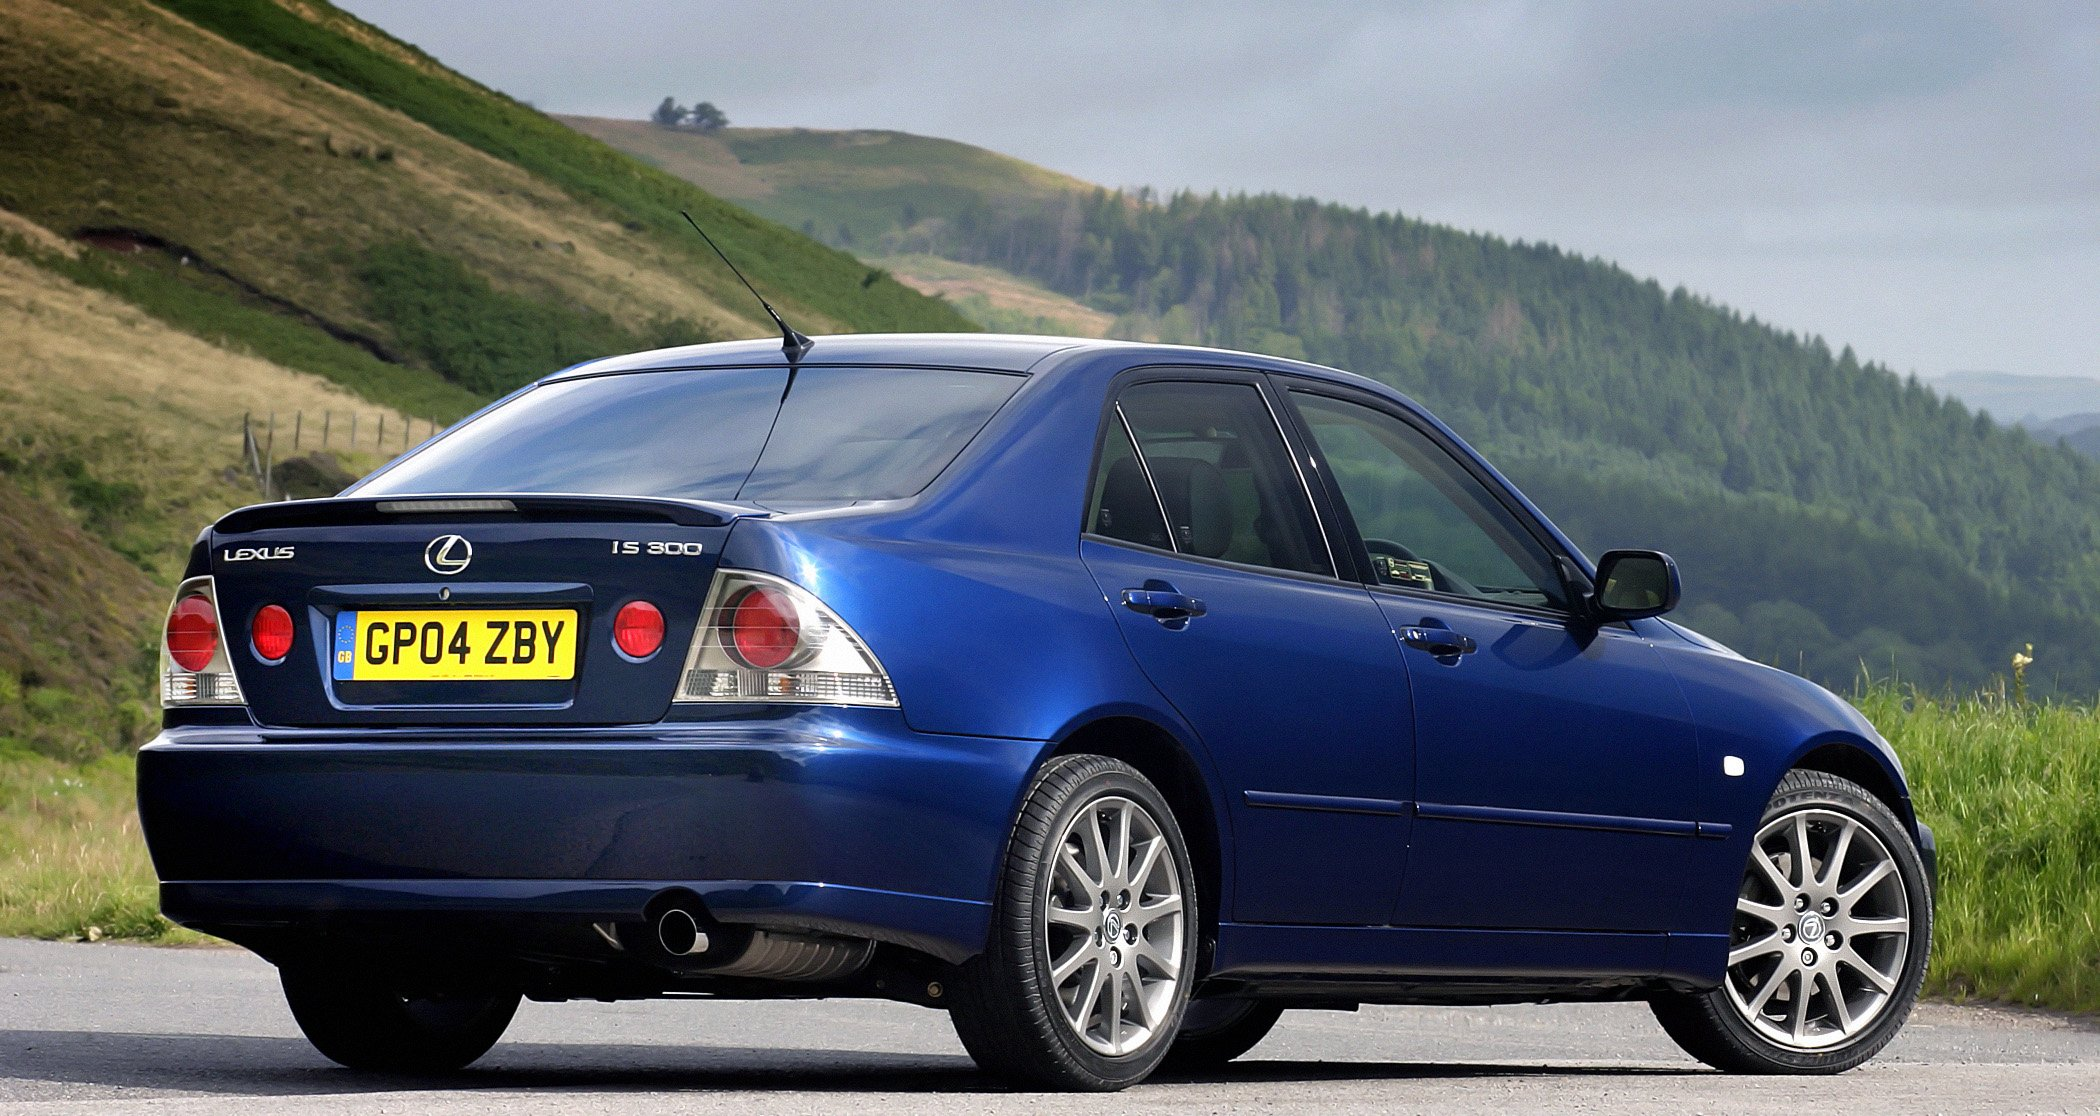 2005 Lexus I S 300 UK Spec XE10 Wallpaper | 2100x1116 | 618899 | WallpaperUP